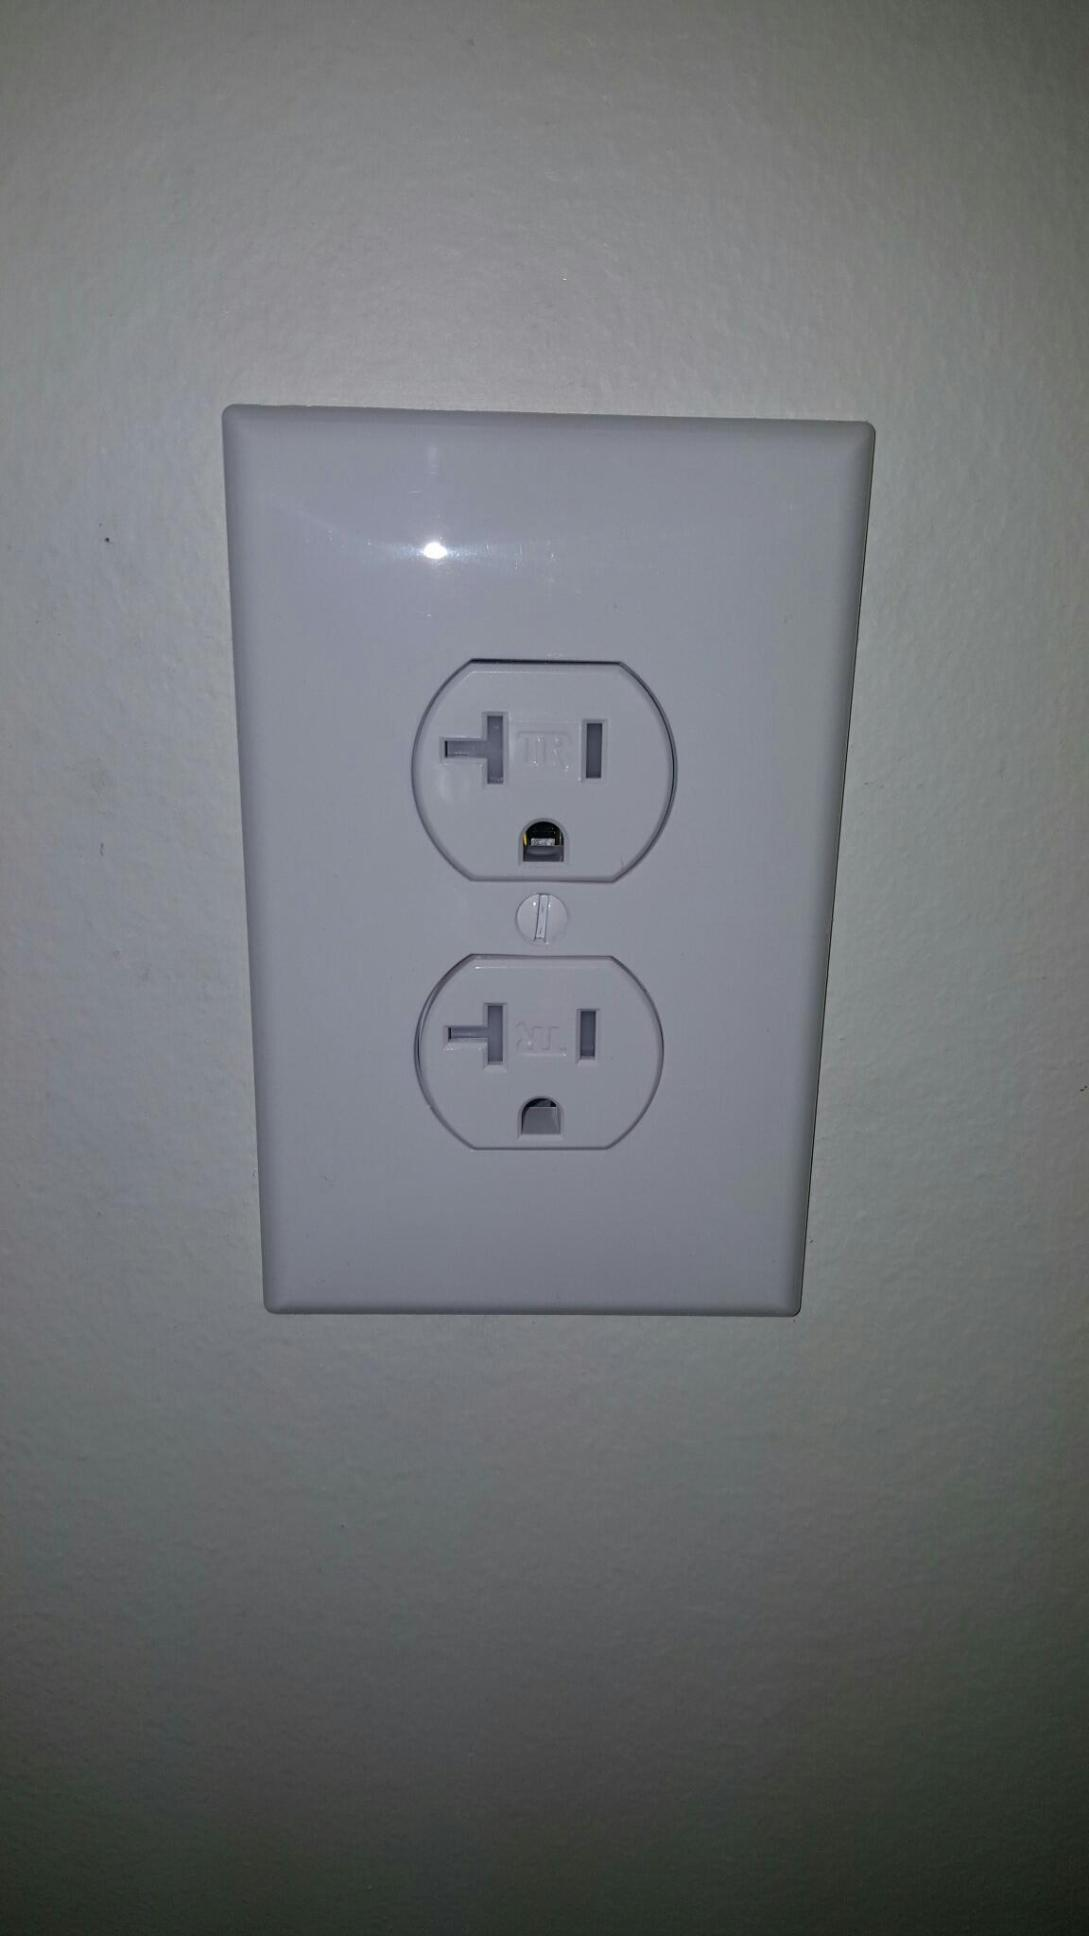 3 prong outlet - home electrical system